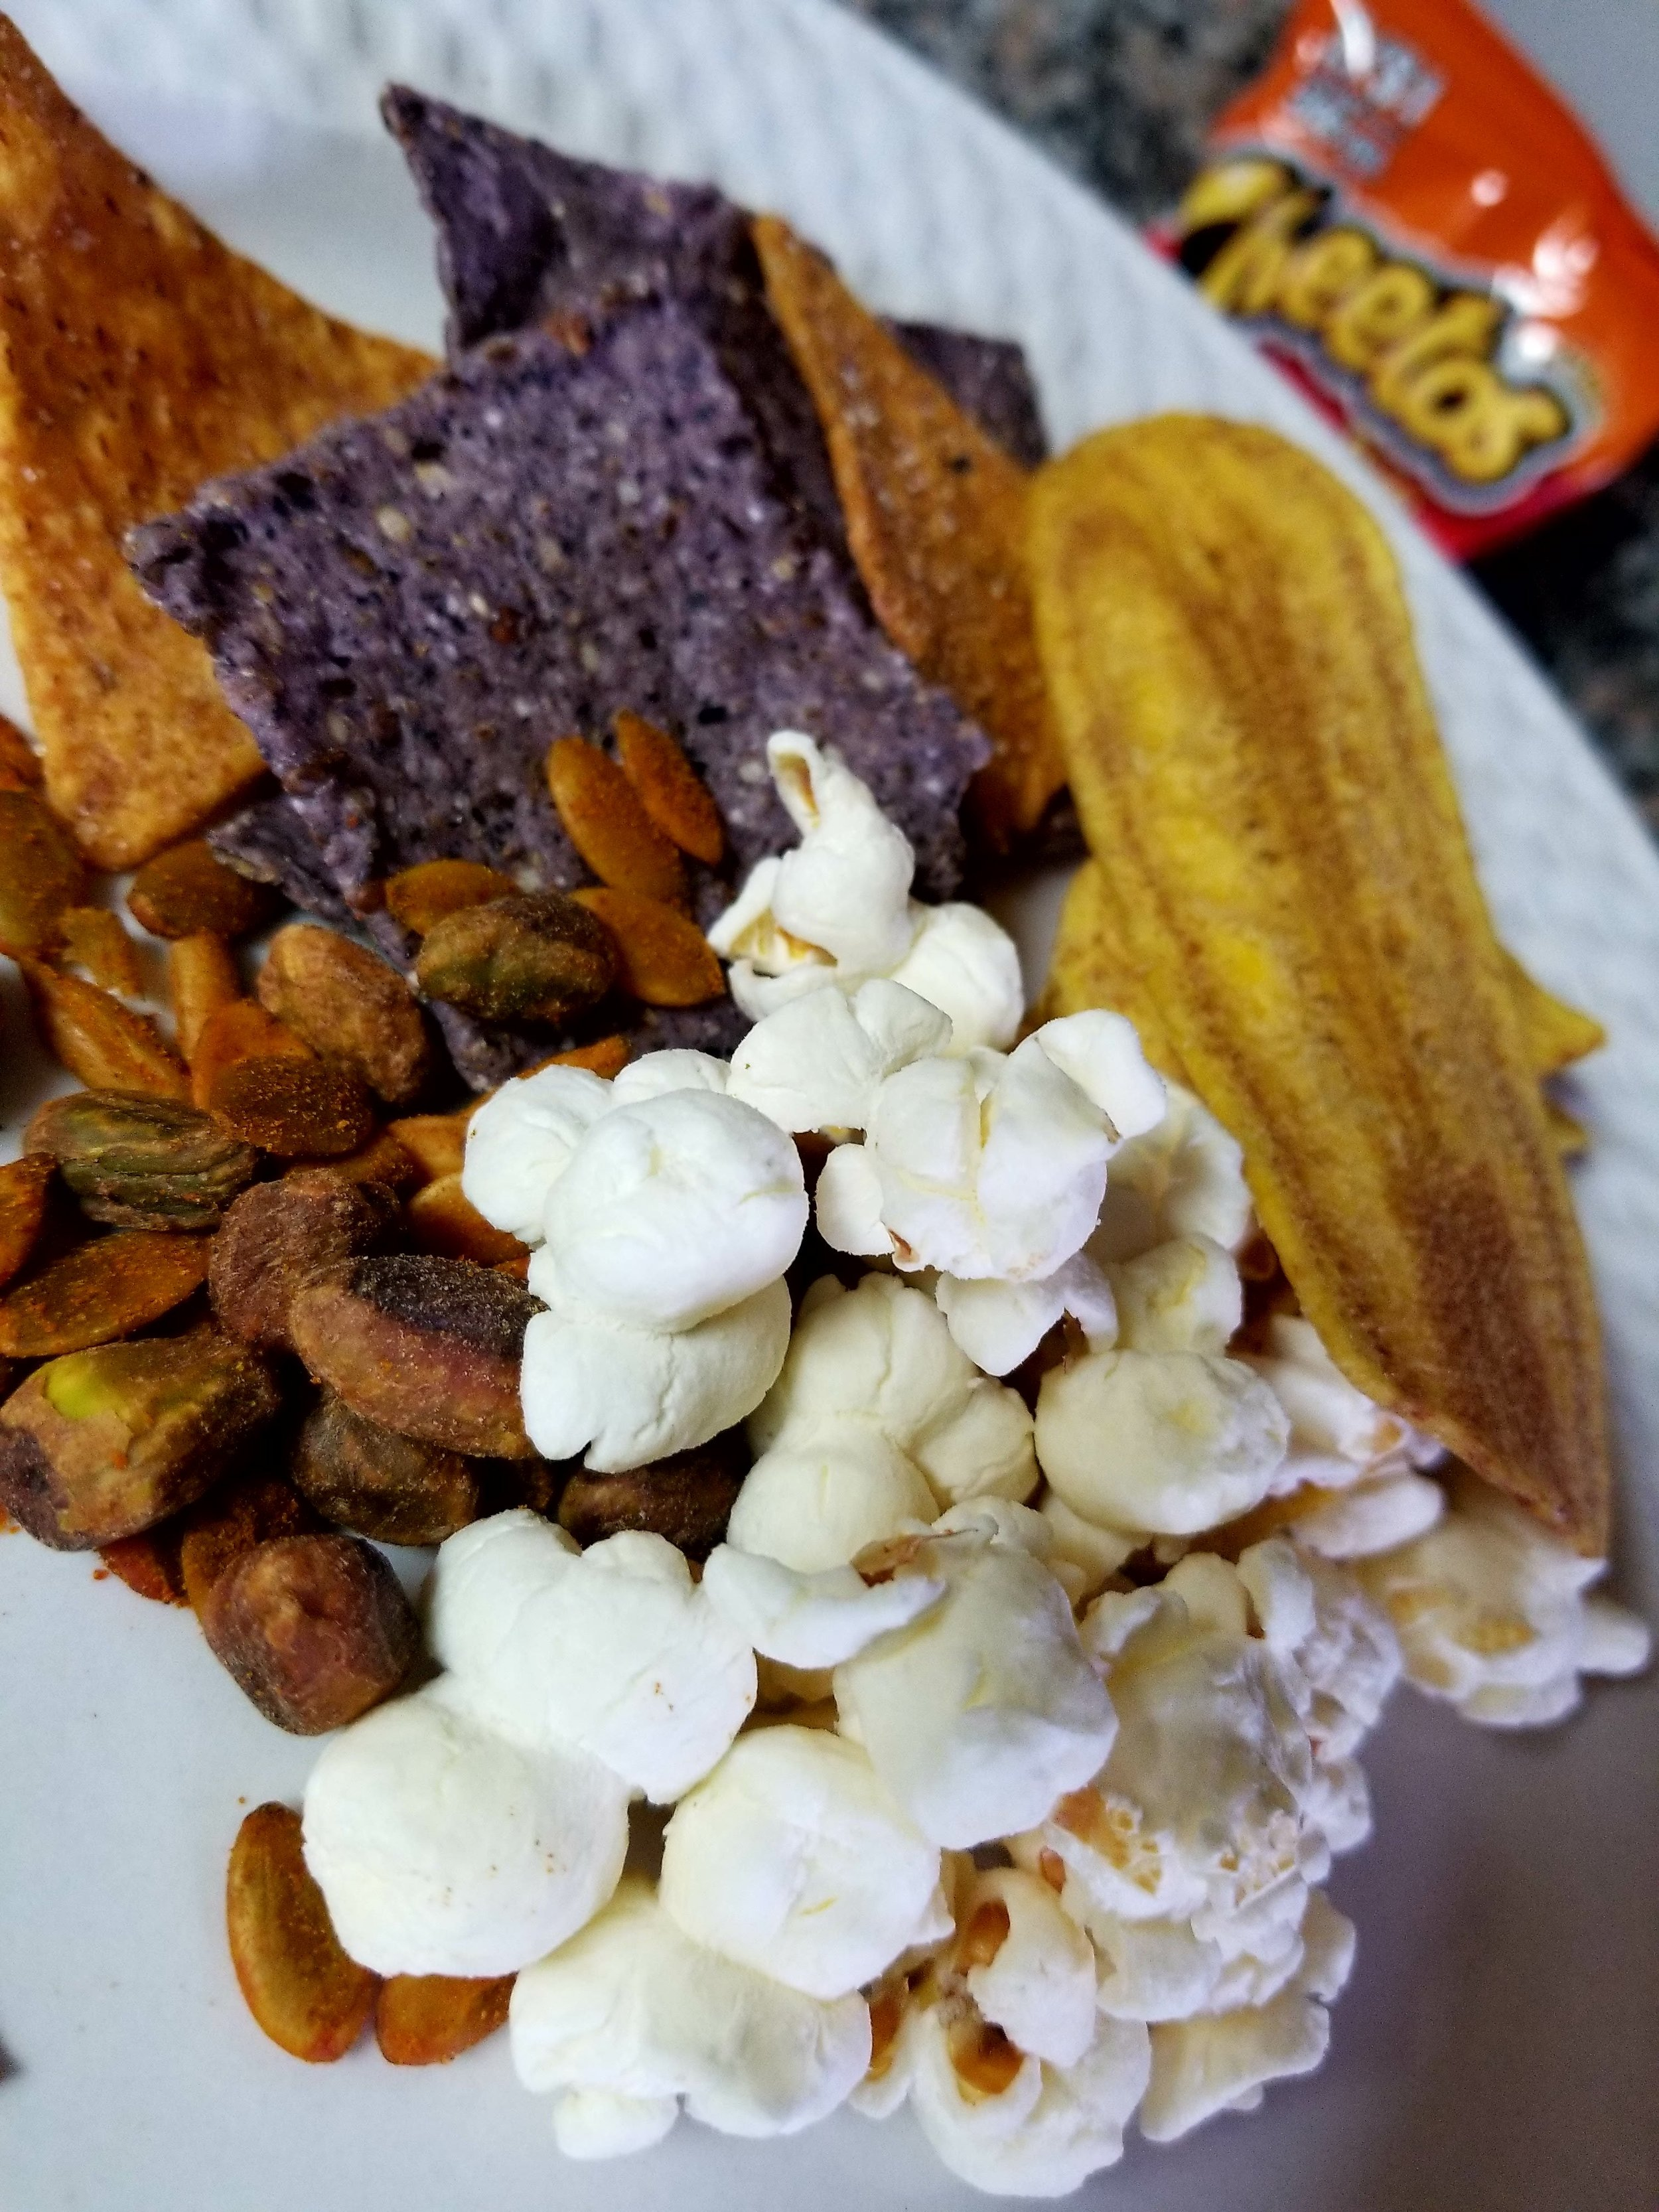 Real corn chips, bean chips, plantain chips, popcorn, and nuts and seeds are much better options that still give that salty crunch!